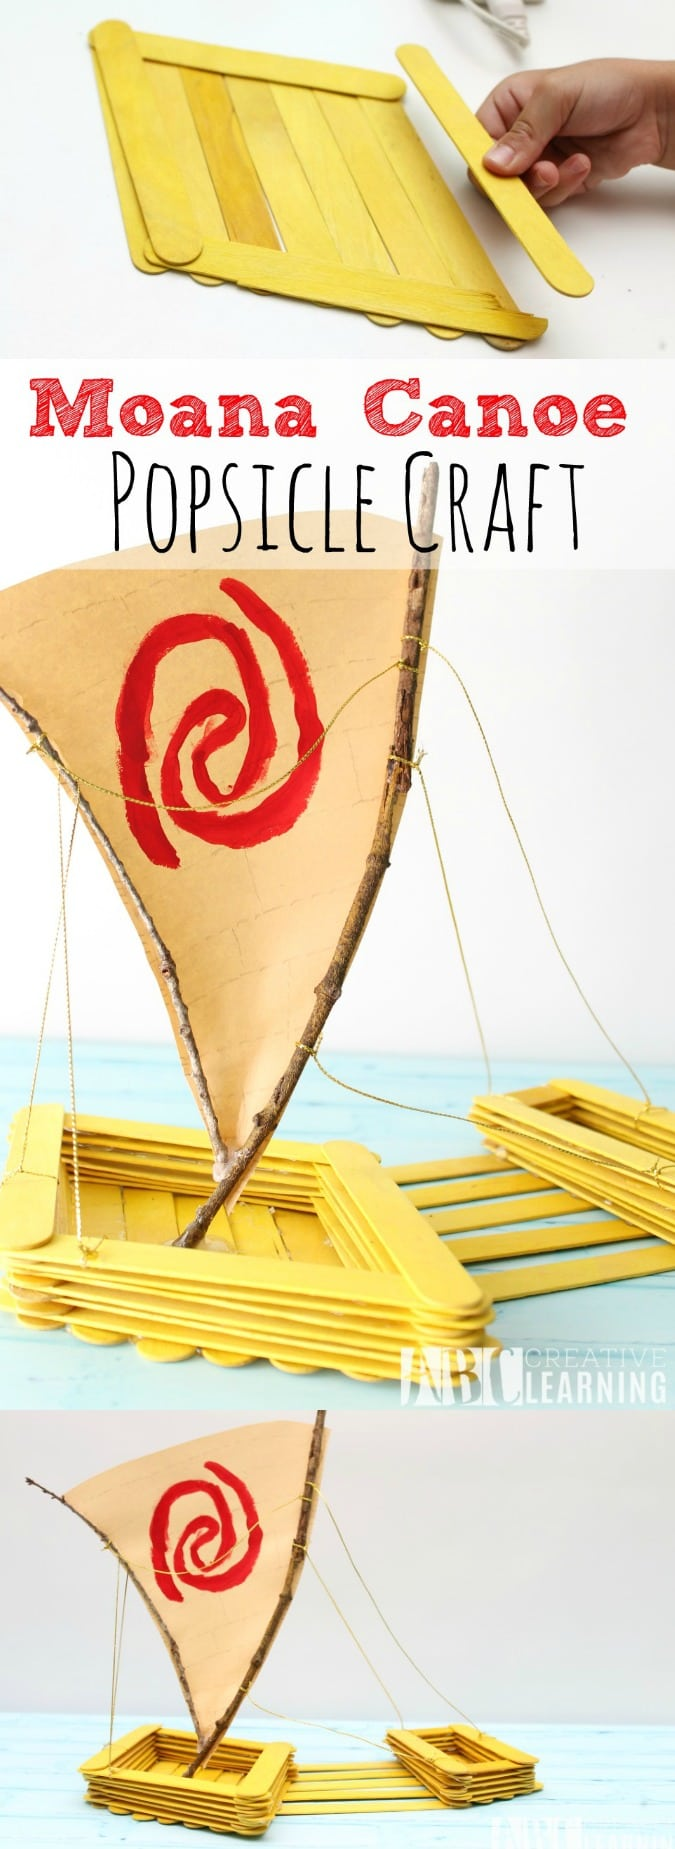 image about Moana Sail Printable named Moana Canoe Popsicle Craft #Moana